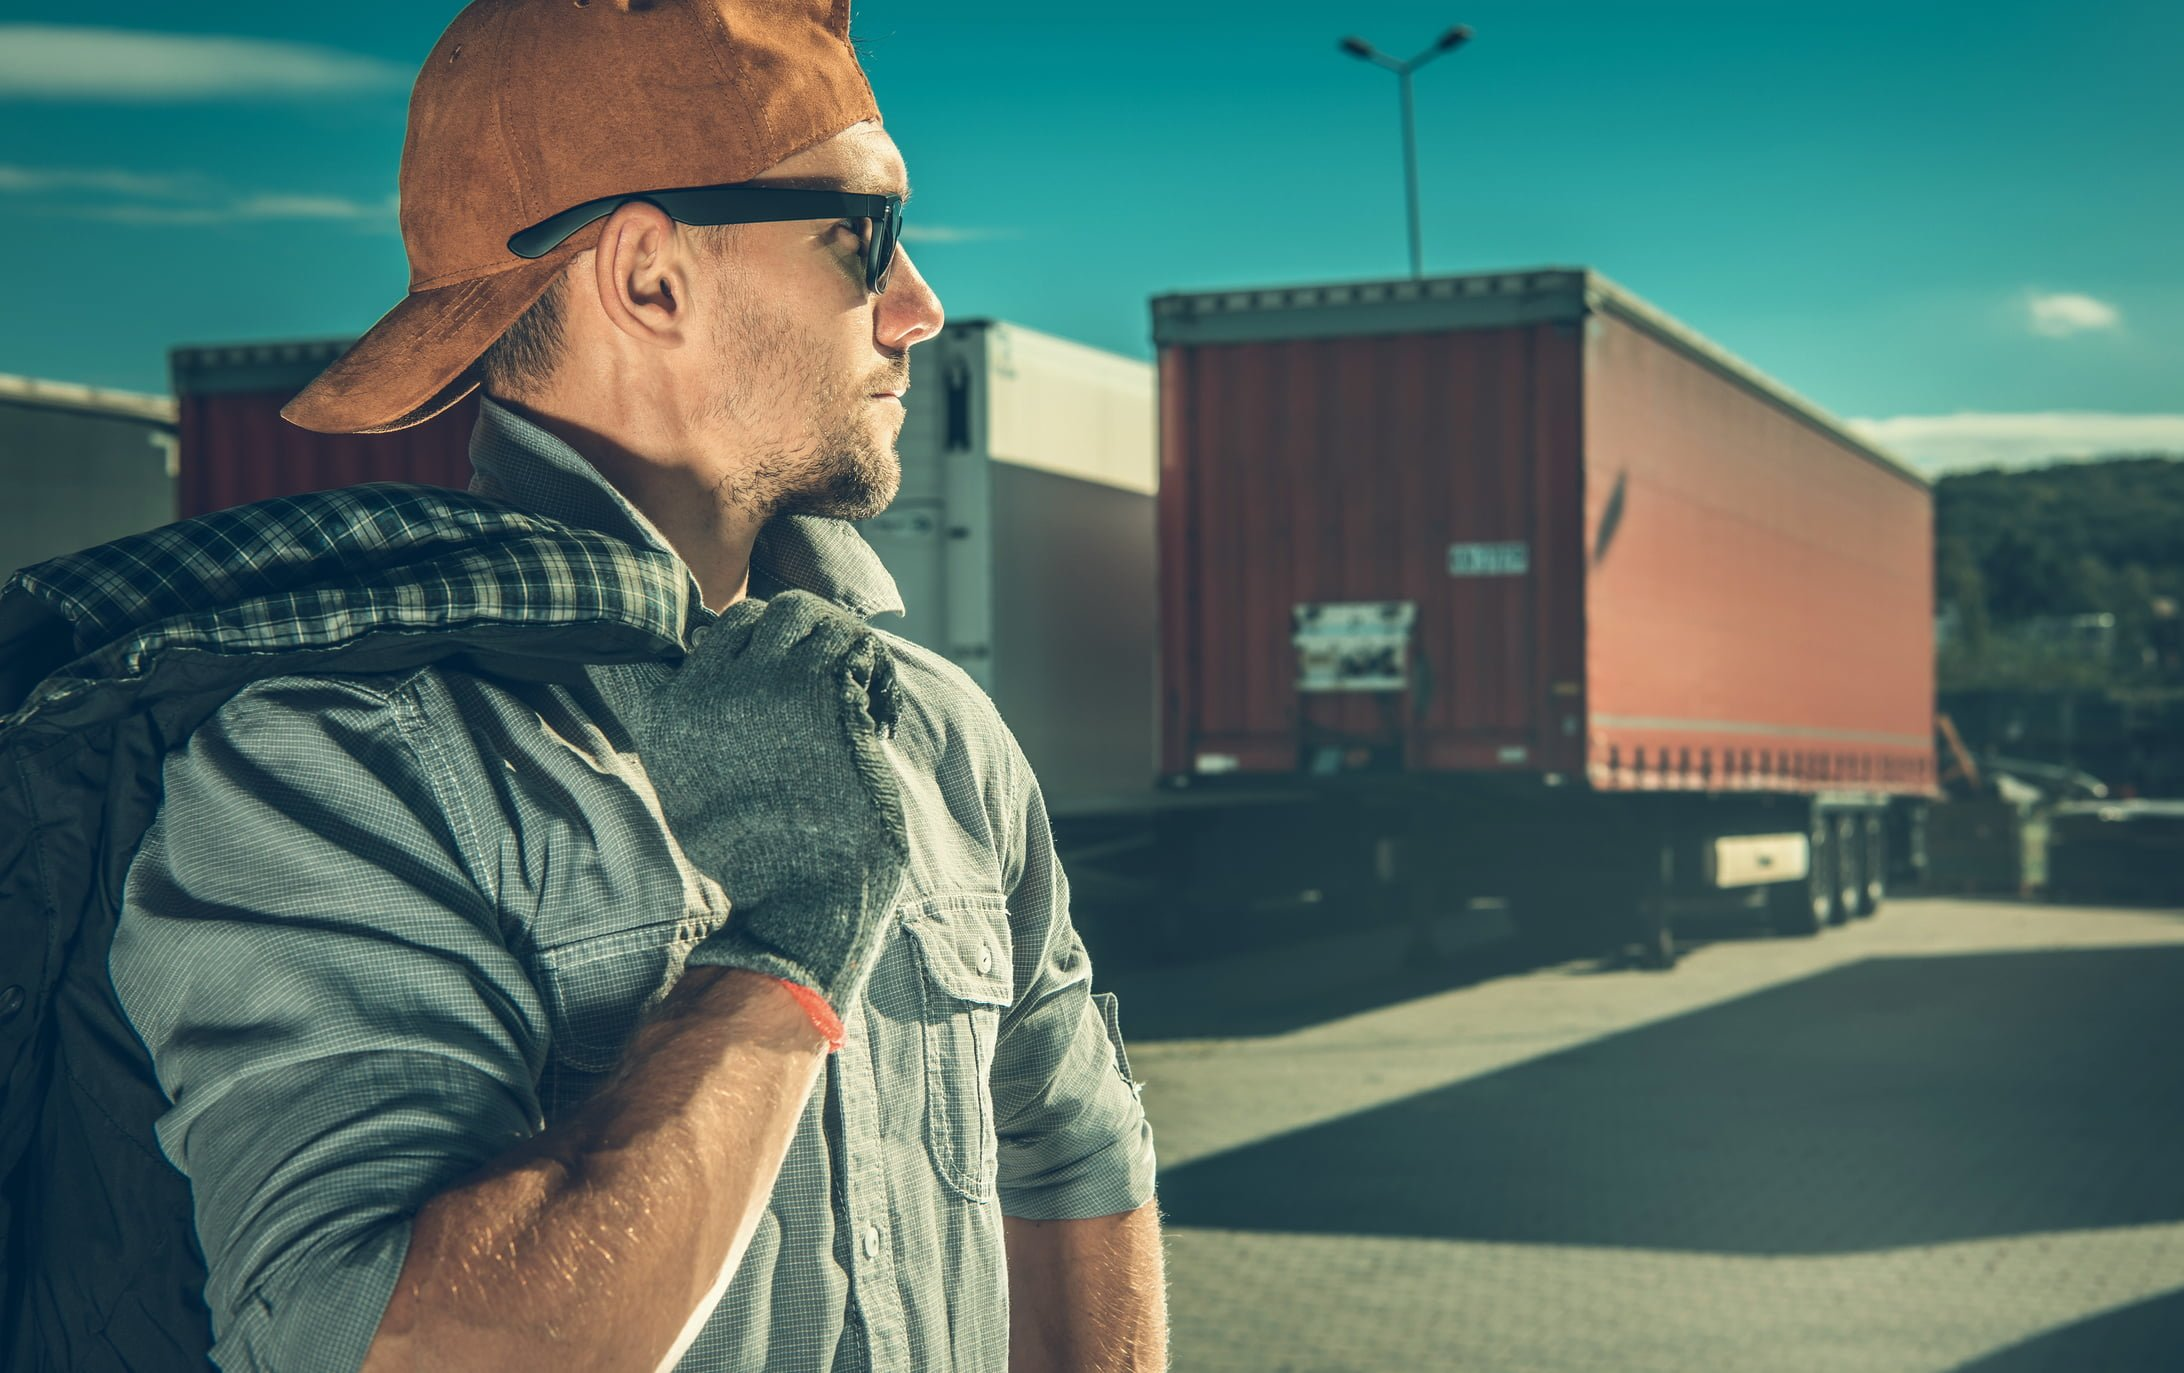 CDL Driver standing in front of 18-wheeler